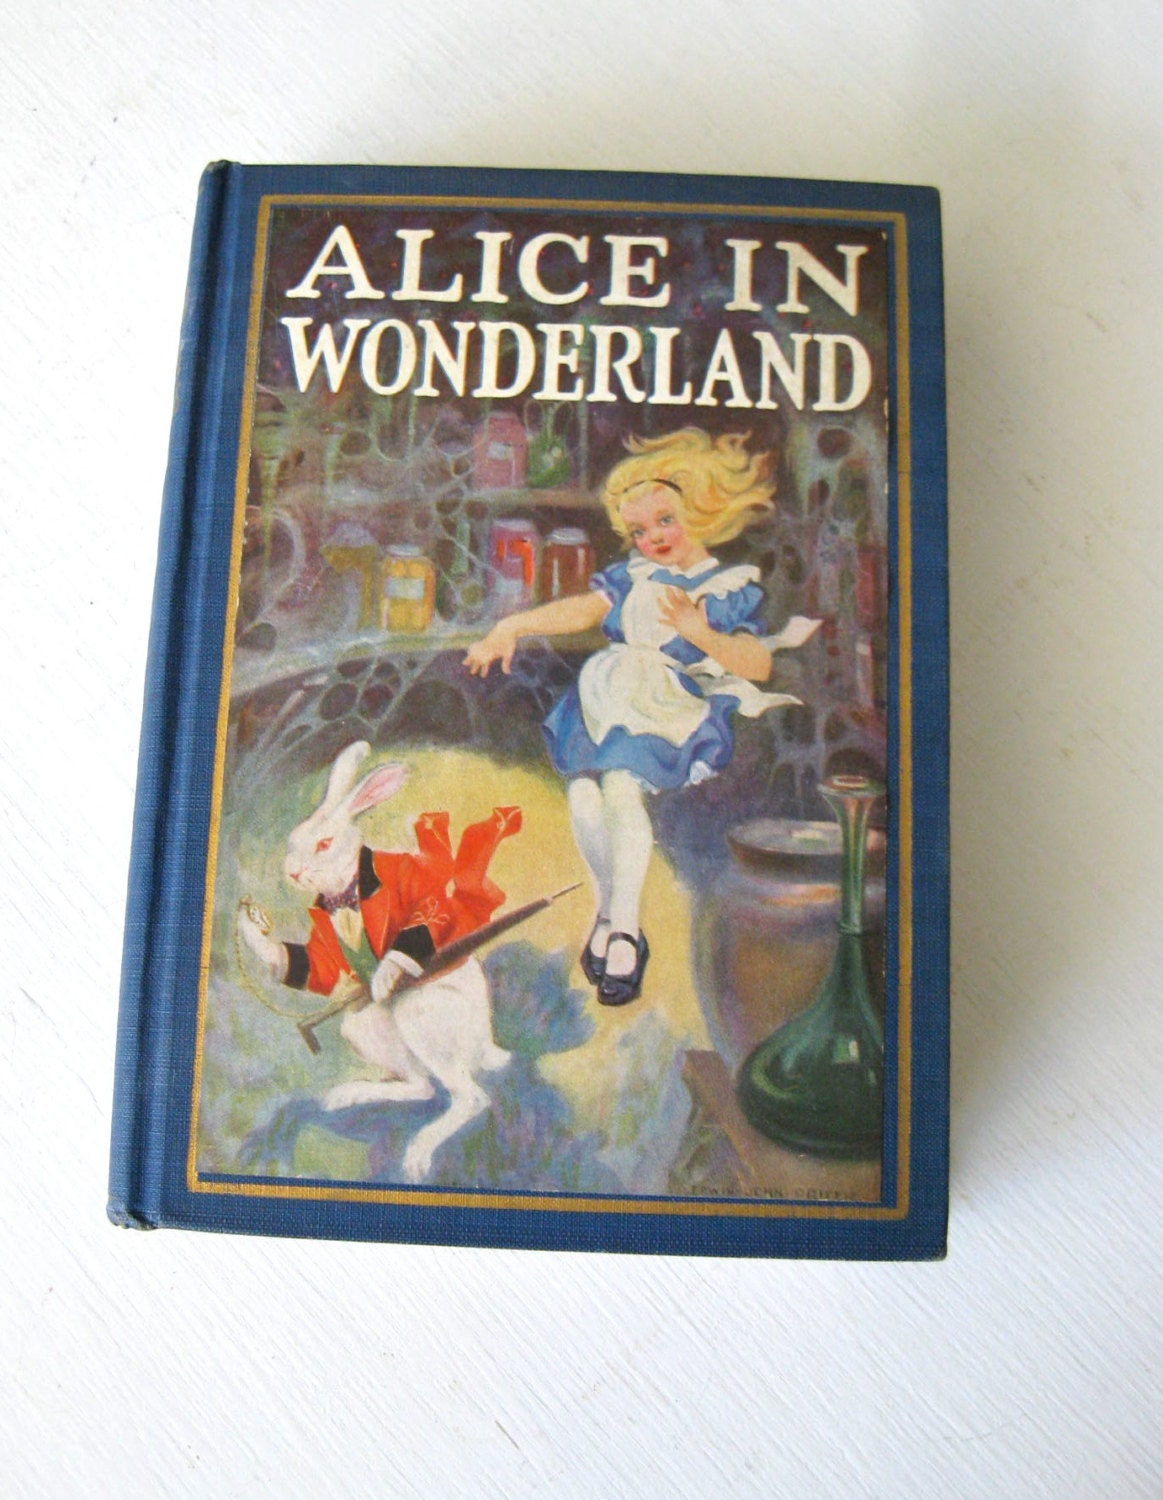 alices adventures in wonderland analysis In the novel alice's adventures in wonderland by lewis carroll first seem haphazard in the analysis of a literary character in a fantasy world.